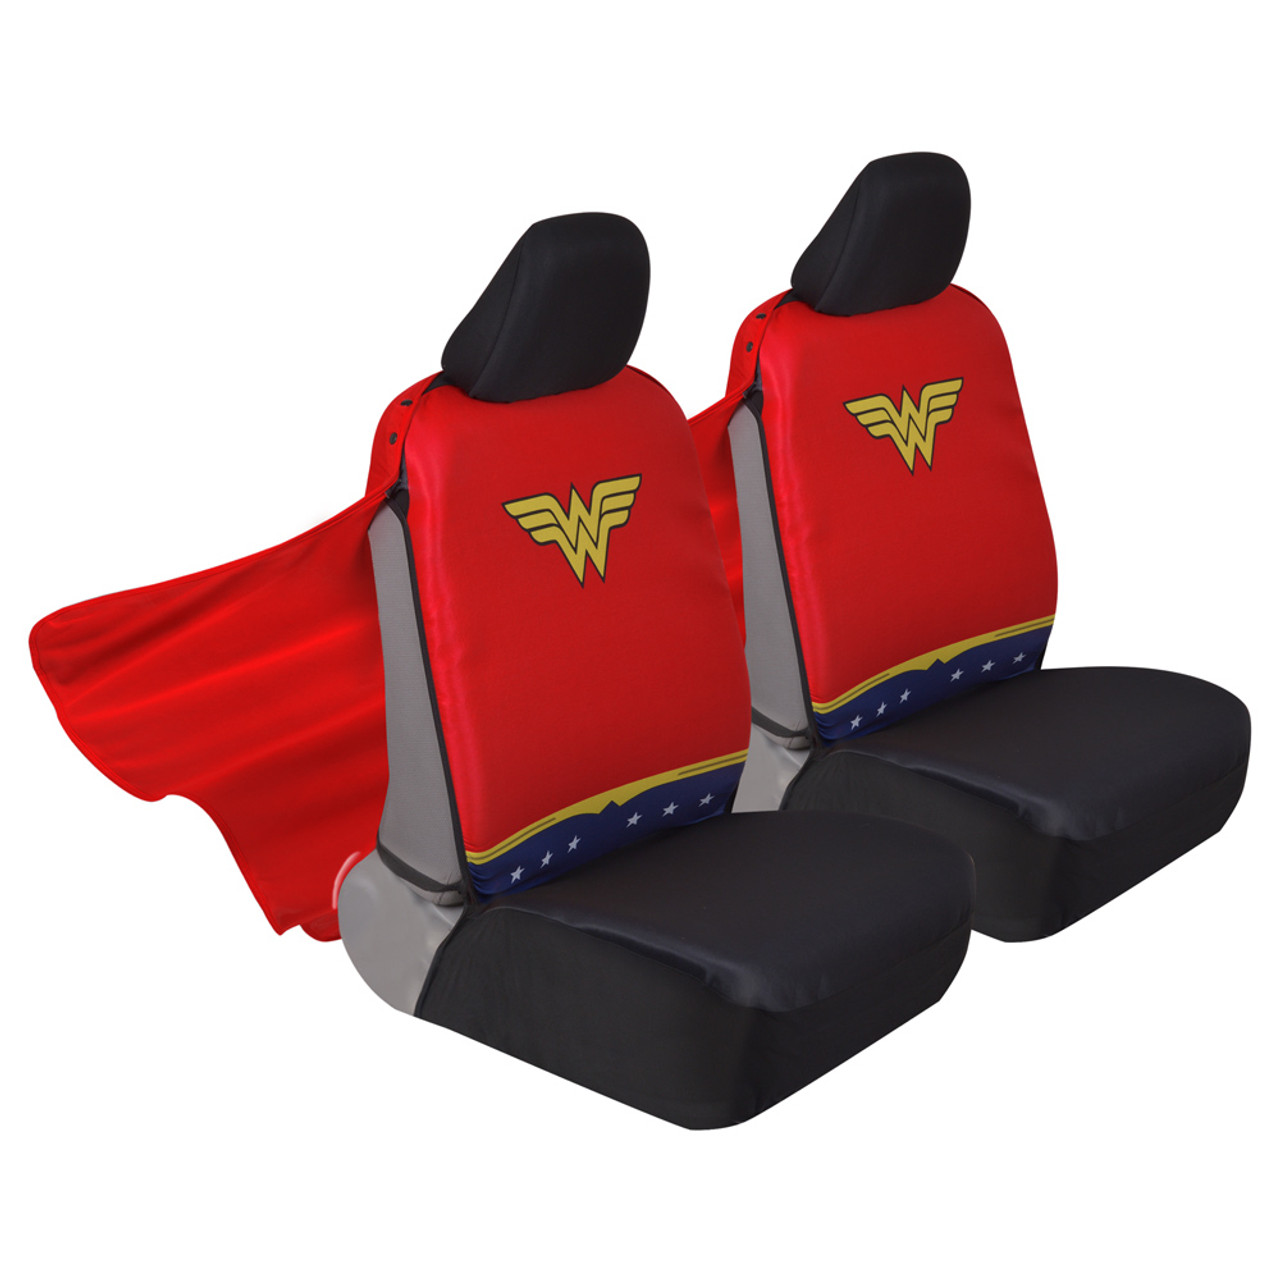 Superhero Seat Covers With Detachable Cape Backing Front Car Seat Covers Seat Back Protector Wonder Woman